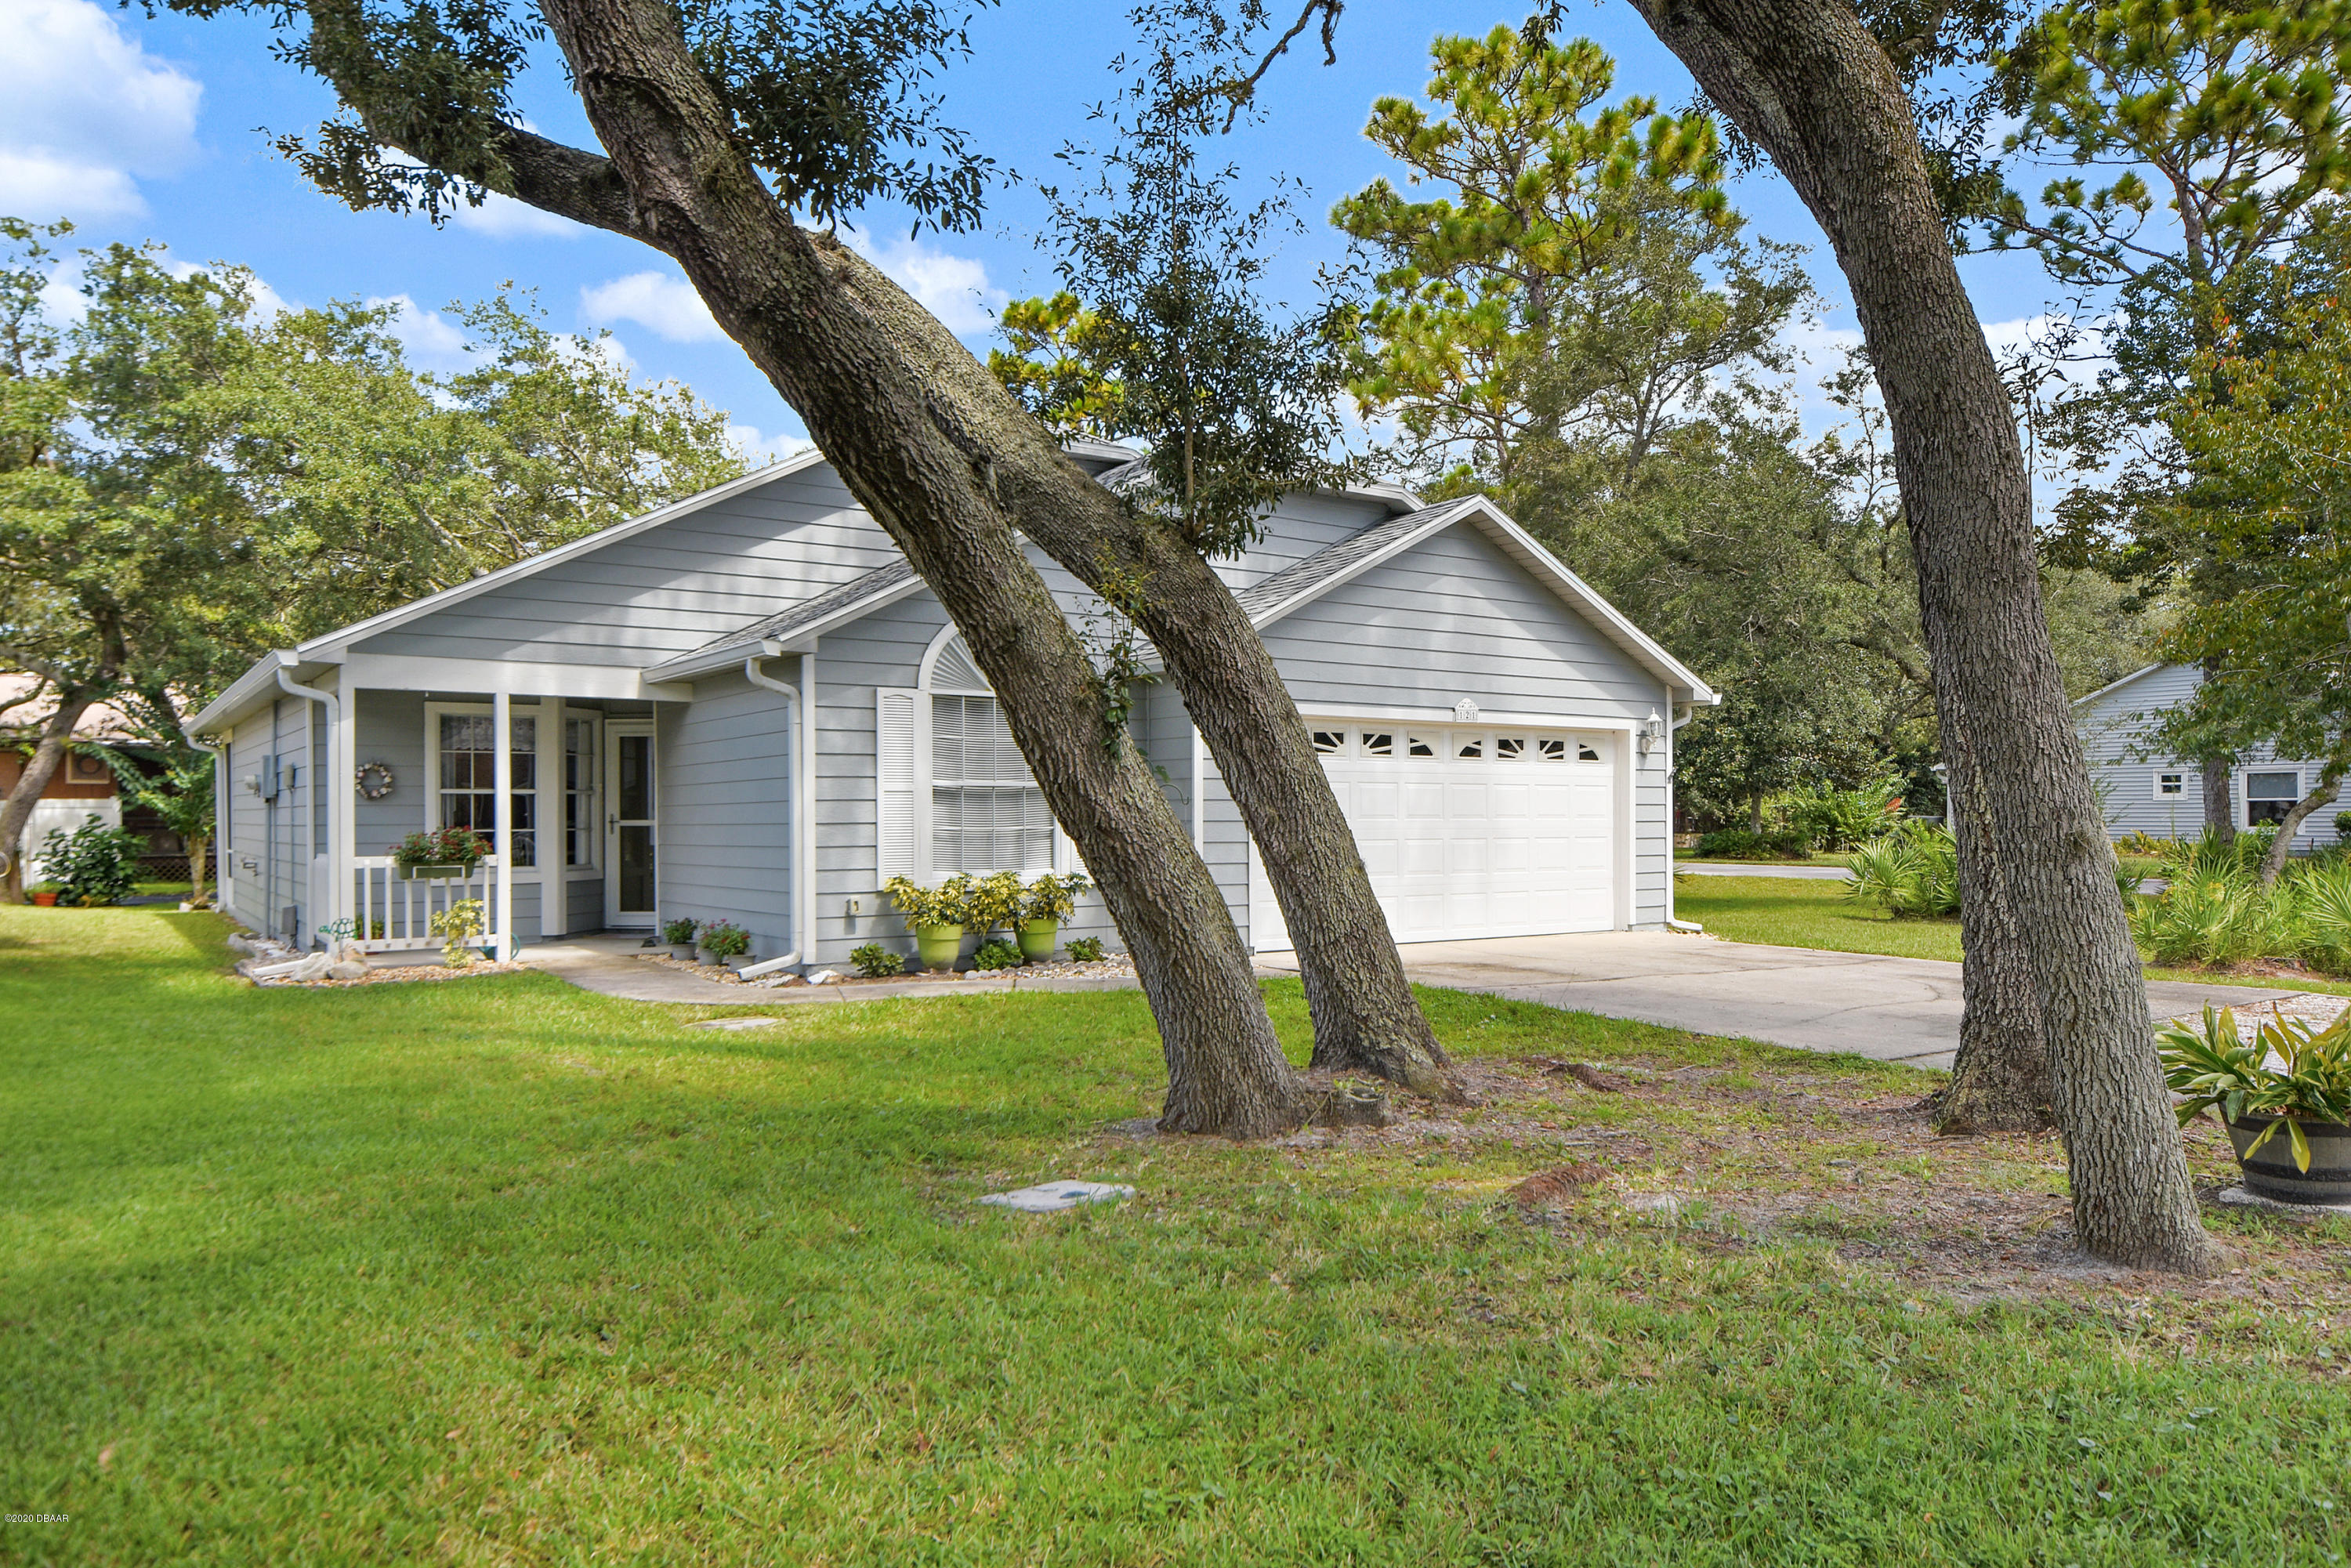 Photo of 121 Crooked Pine Road, Port Orange, FL 32128